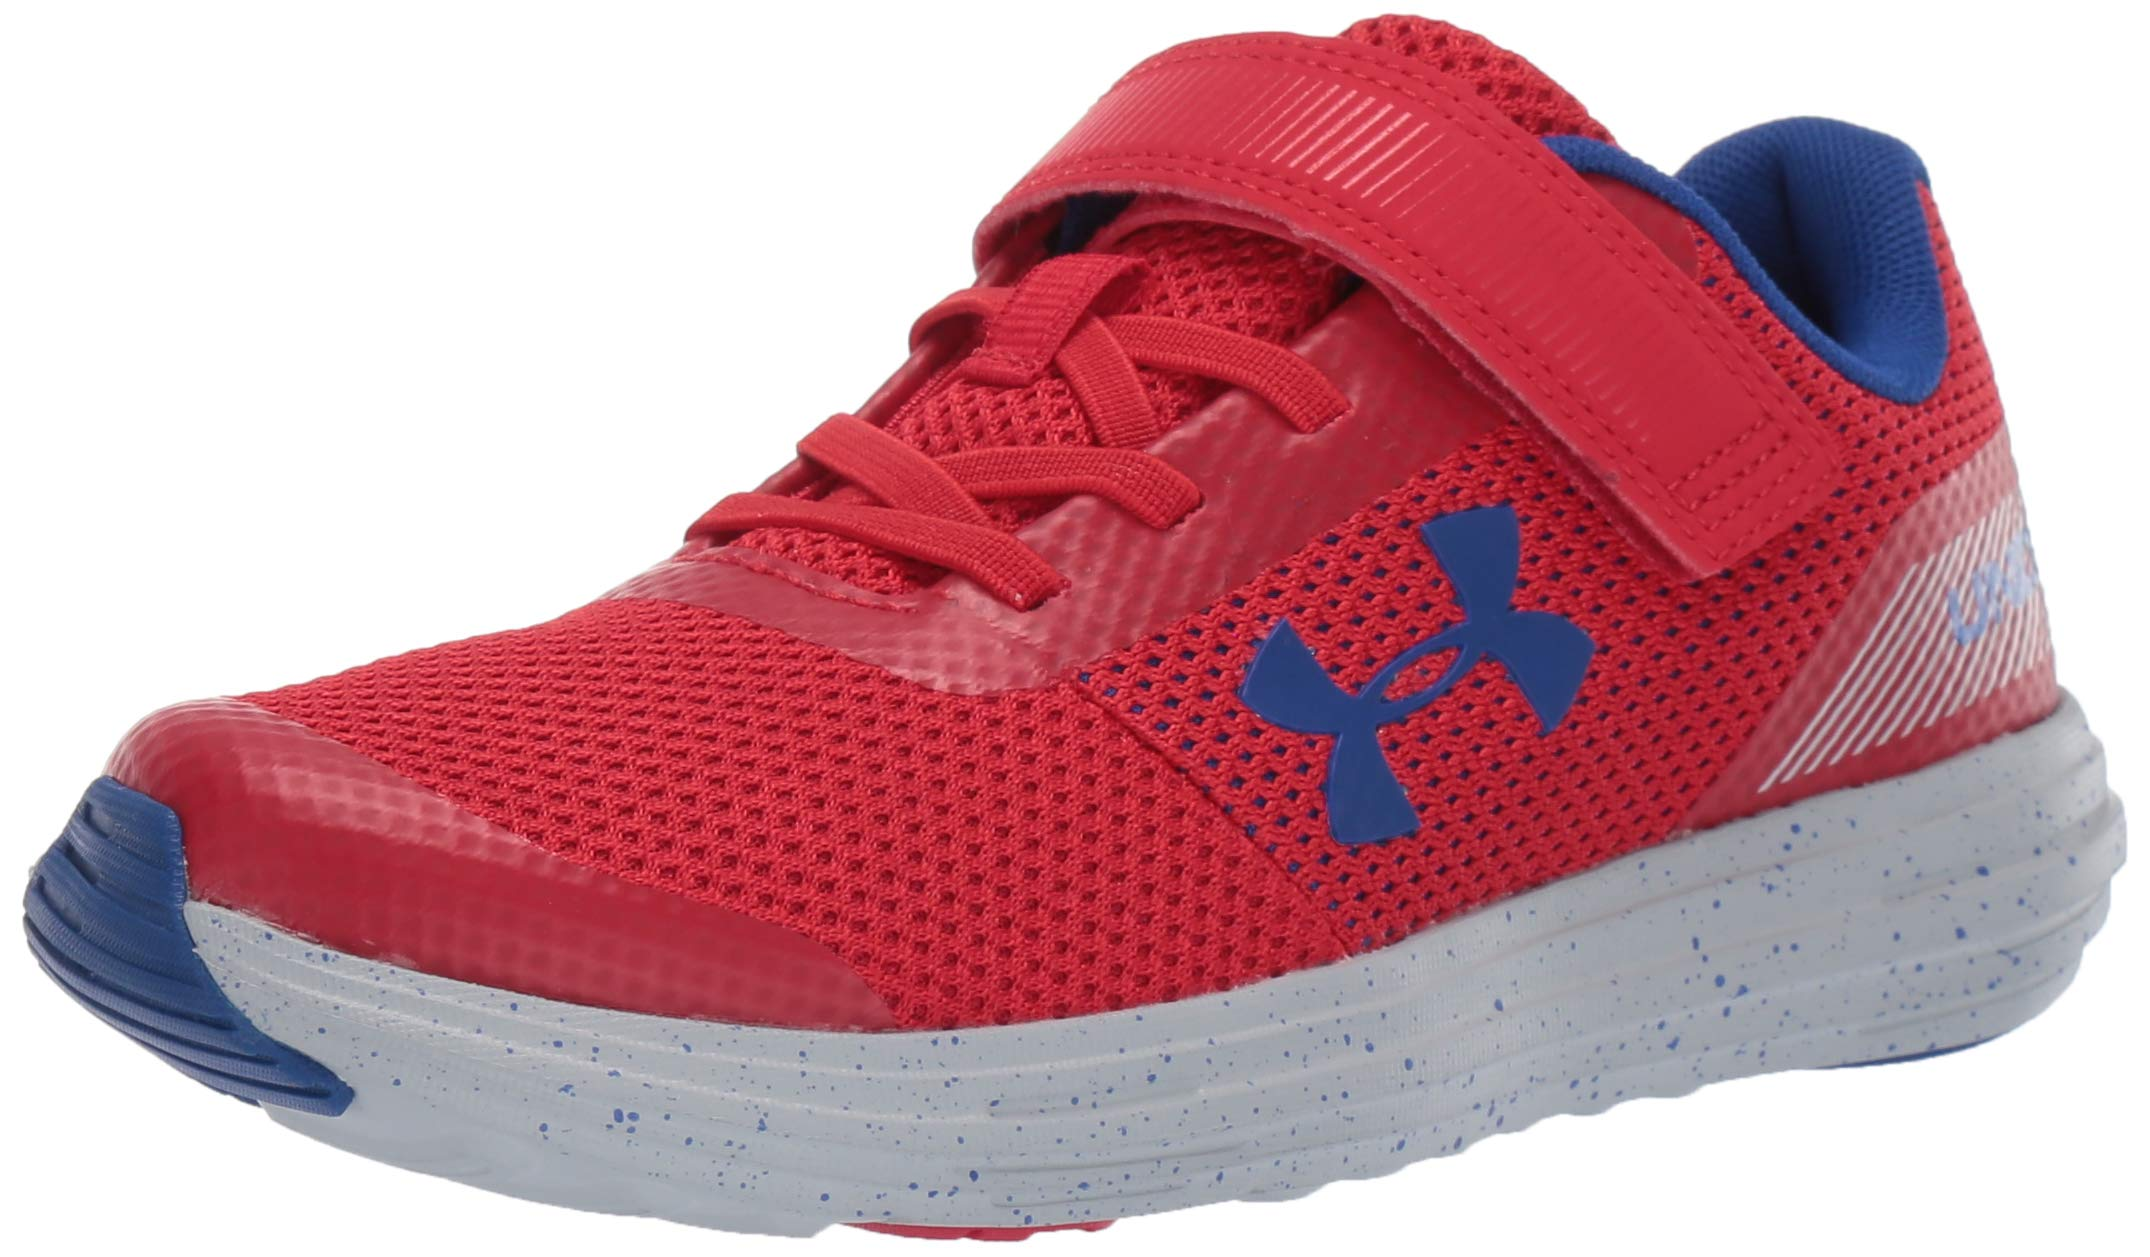 Under Armour Boys' Pre School Surge RN Alternate Closure Sneaker, Red (602)/Mod Gray, 1